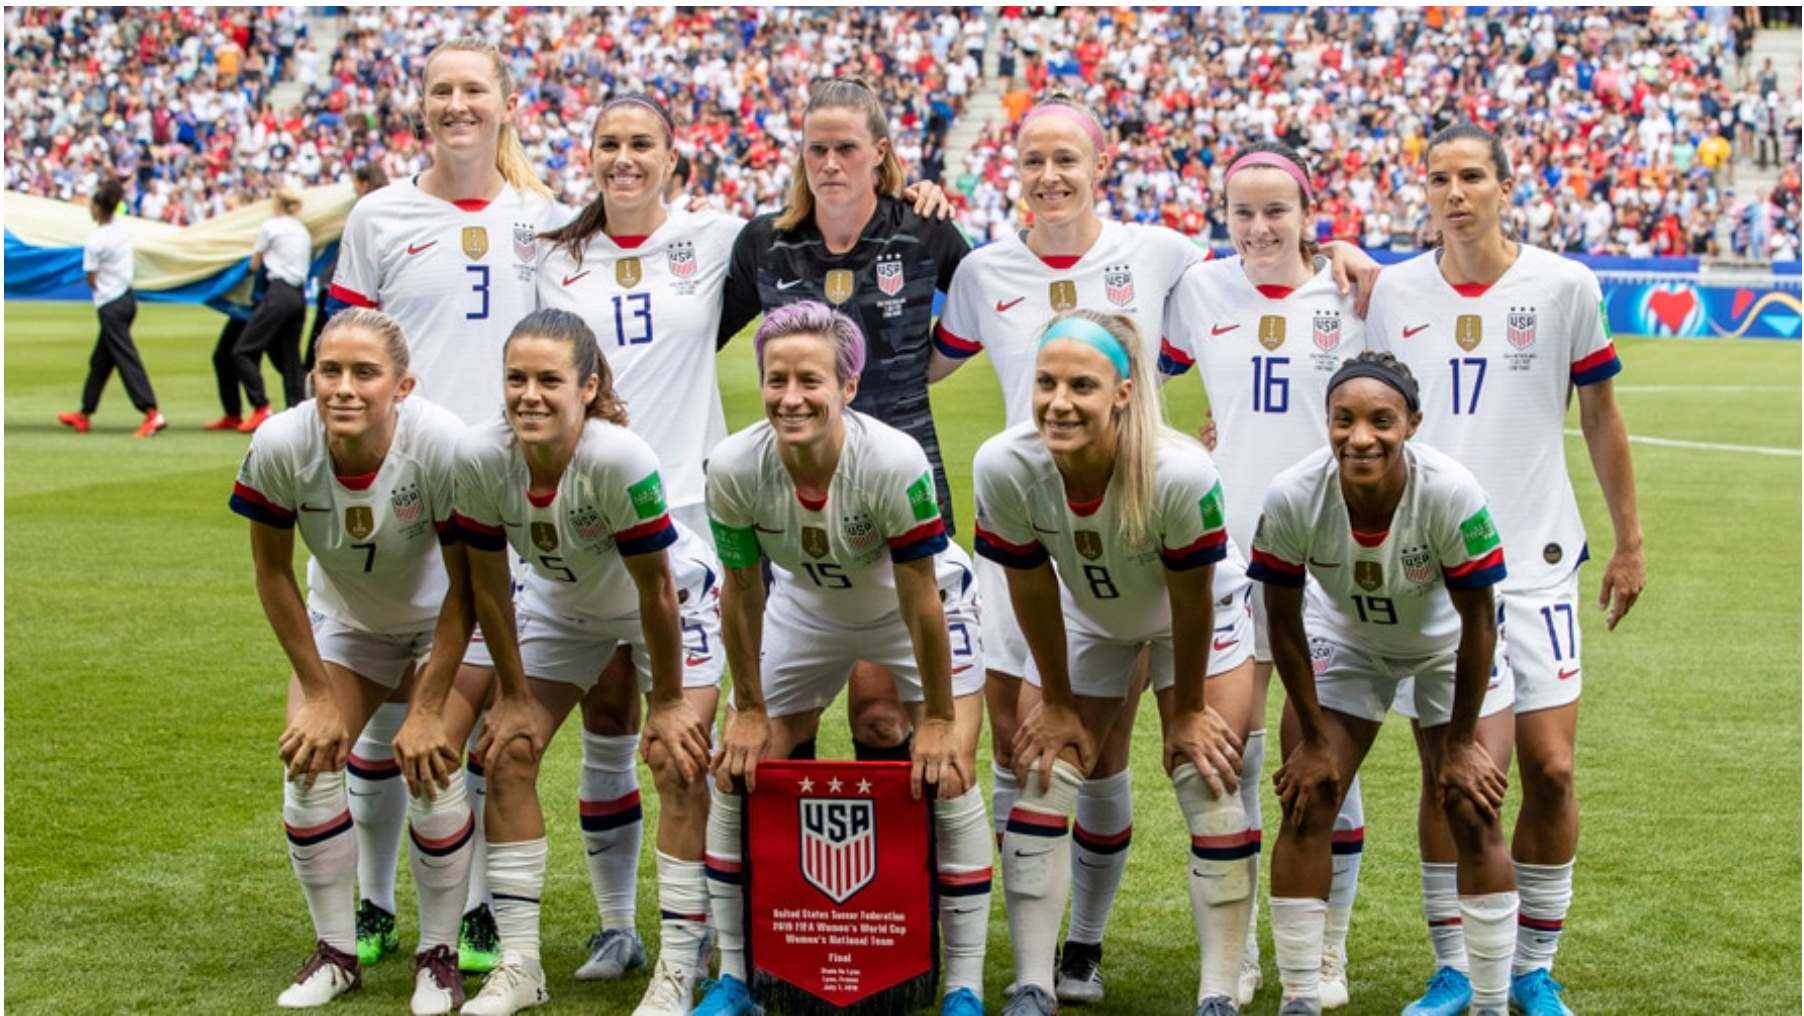 With US Women's Soccer Donation, Secret Hopes to Start a Sponsorship Trend